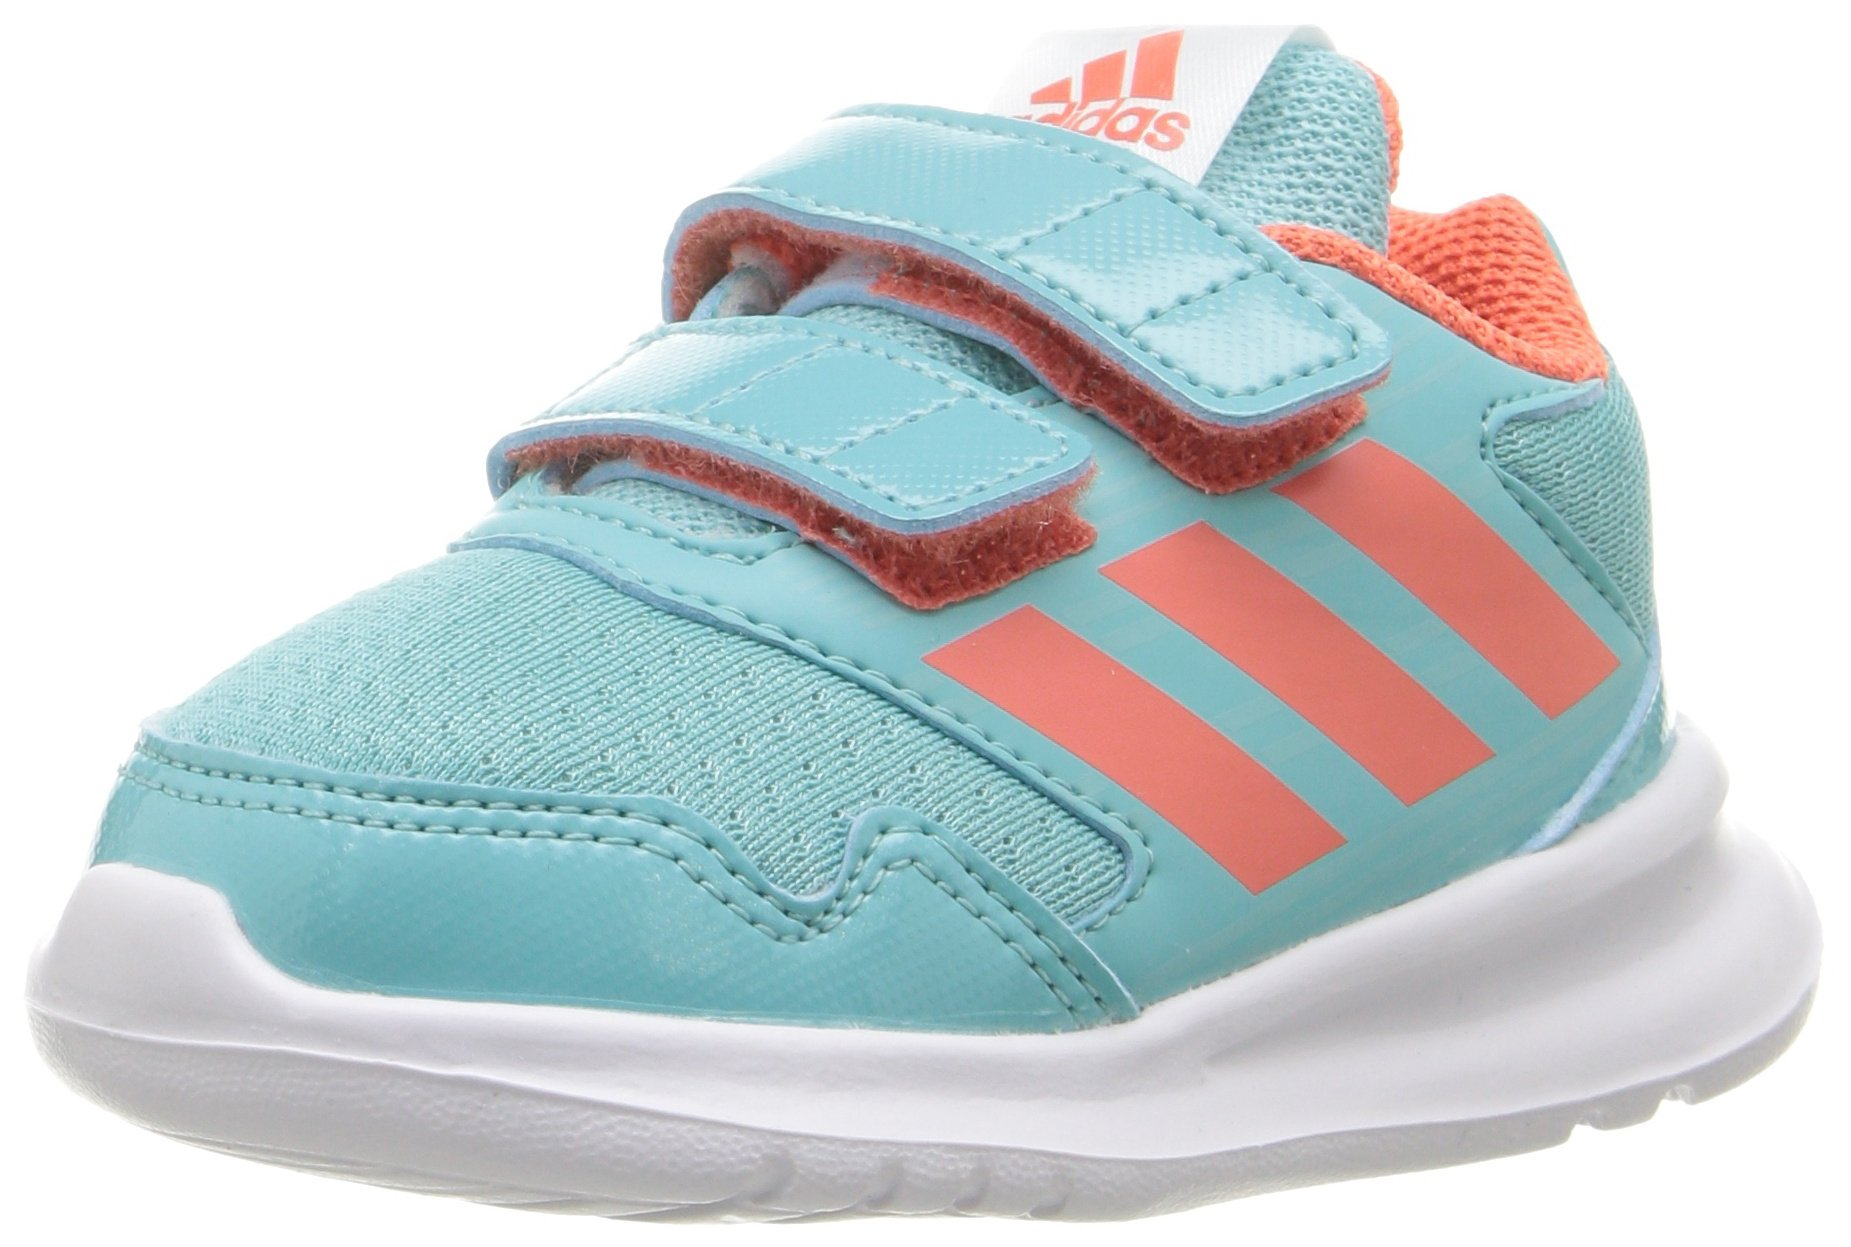 check out a7065 61f95 Galleon - Adidas Originals Girls  Altarun Sneaker, Easy Mint Easy Coral  Ocean, 8 M US Toddler